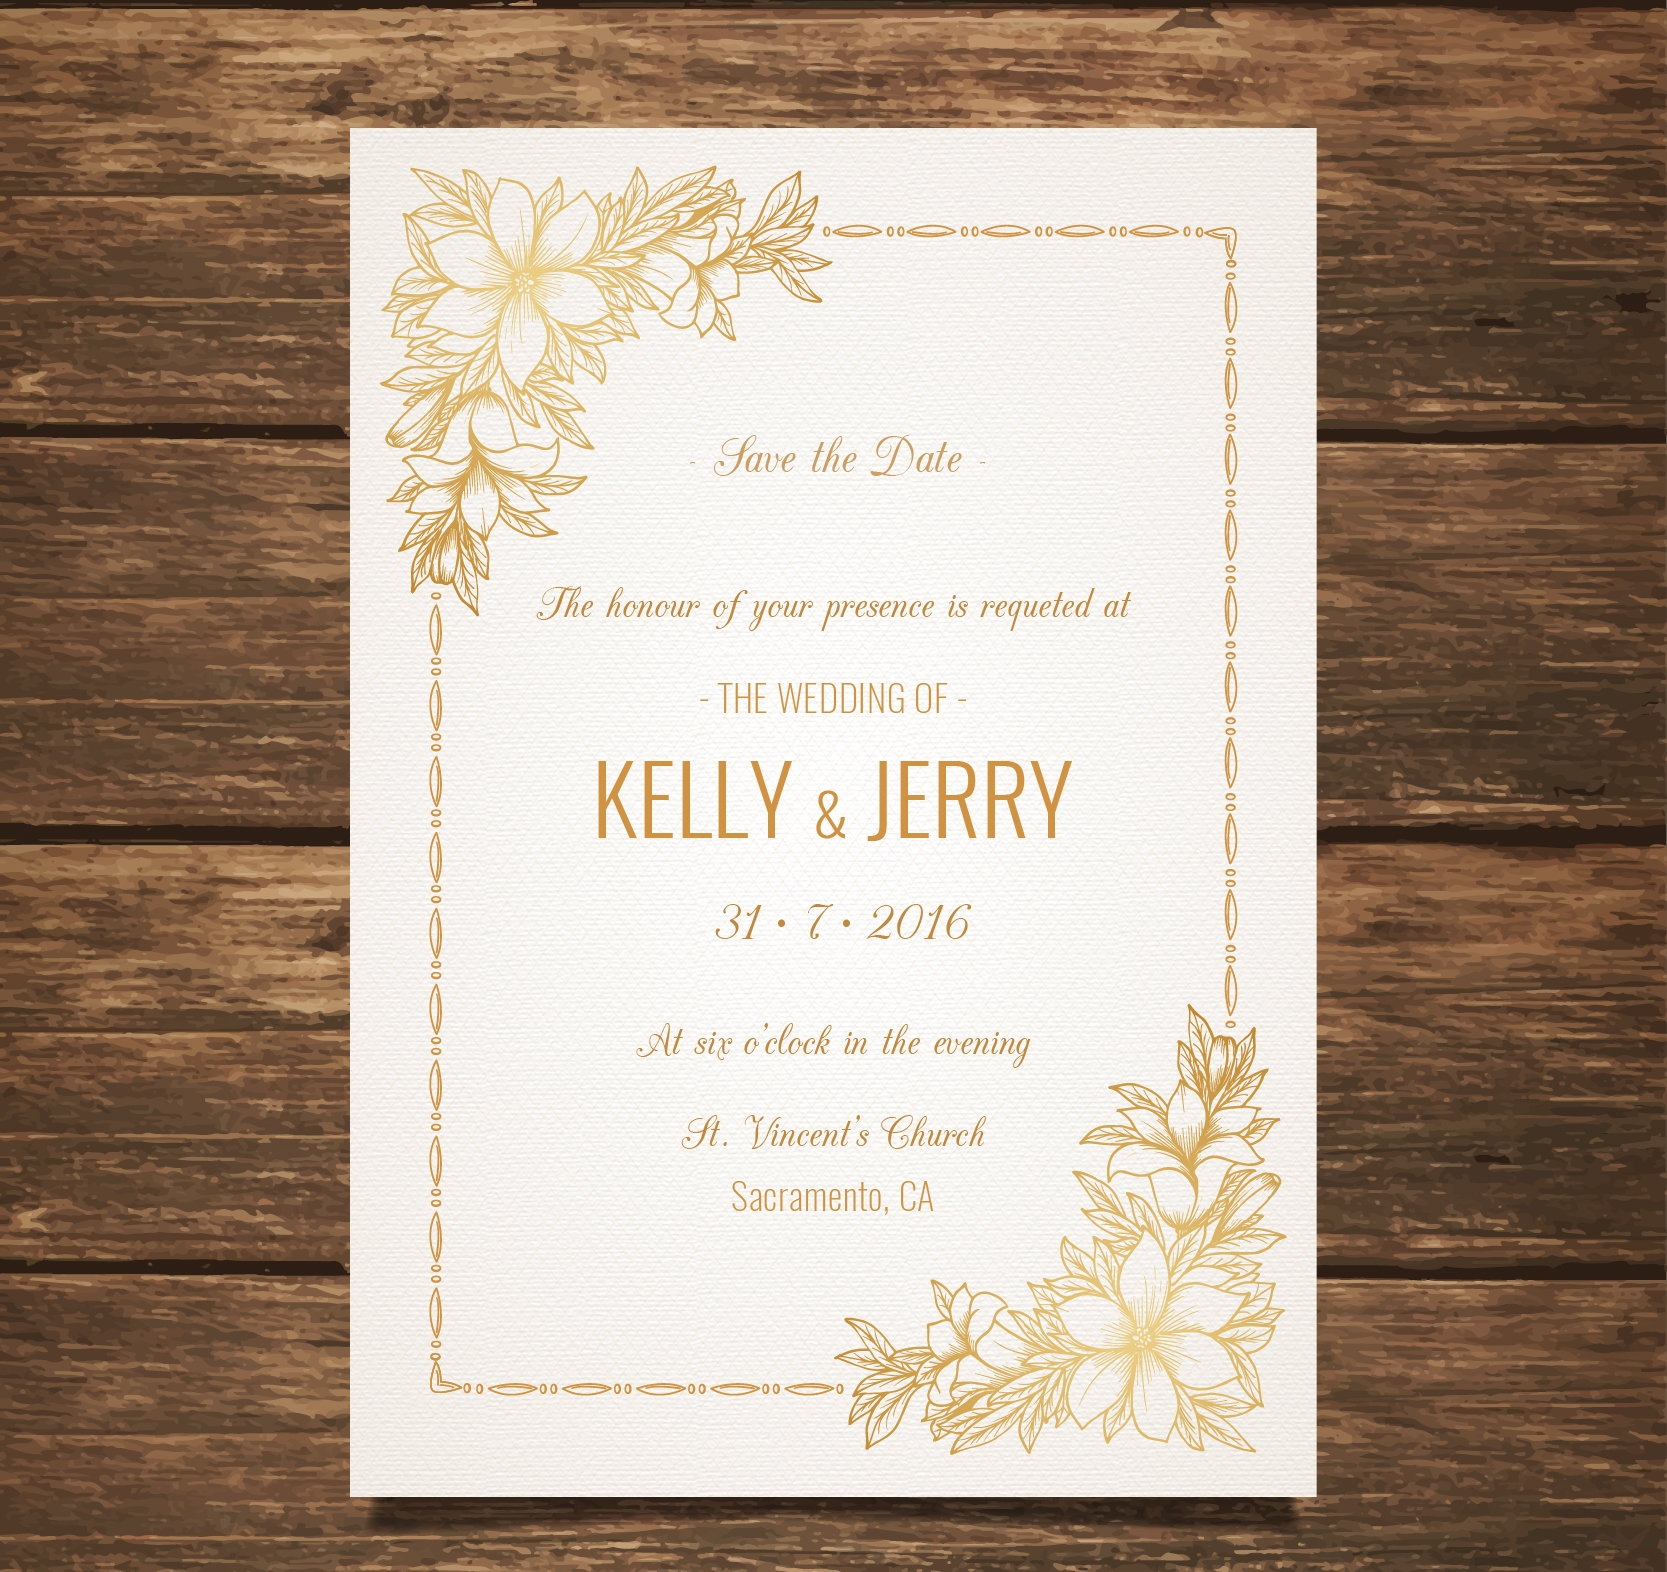 wedding invitation with golden flowers